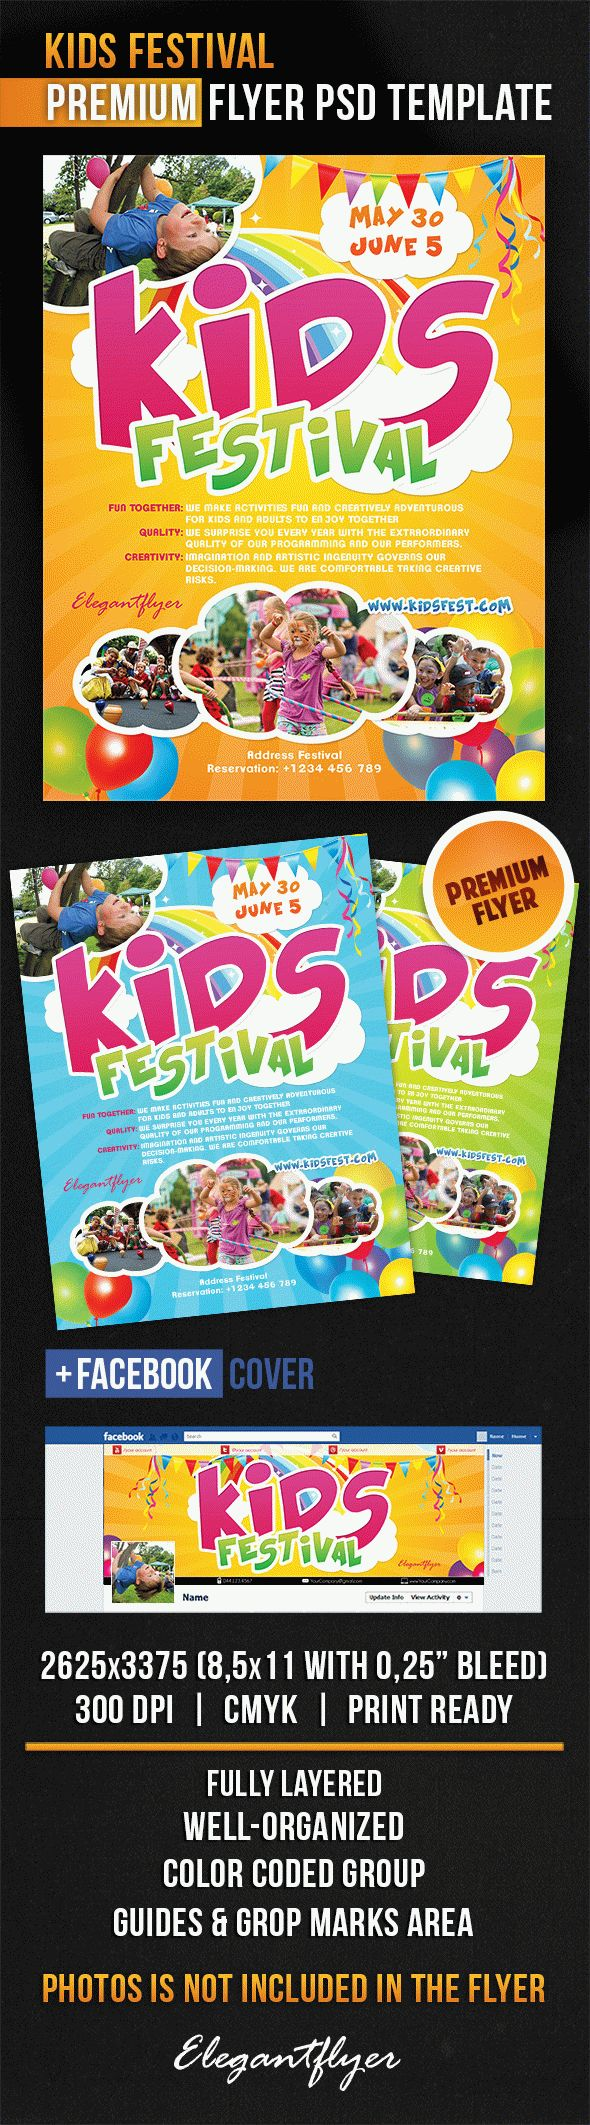 Kids festival flyer psd template by elegantflyer kids festival flyer psd template maxwellsz